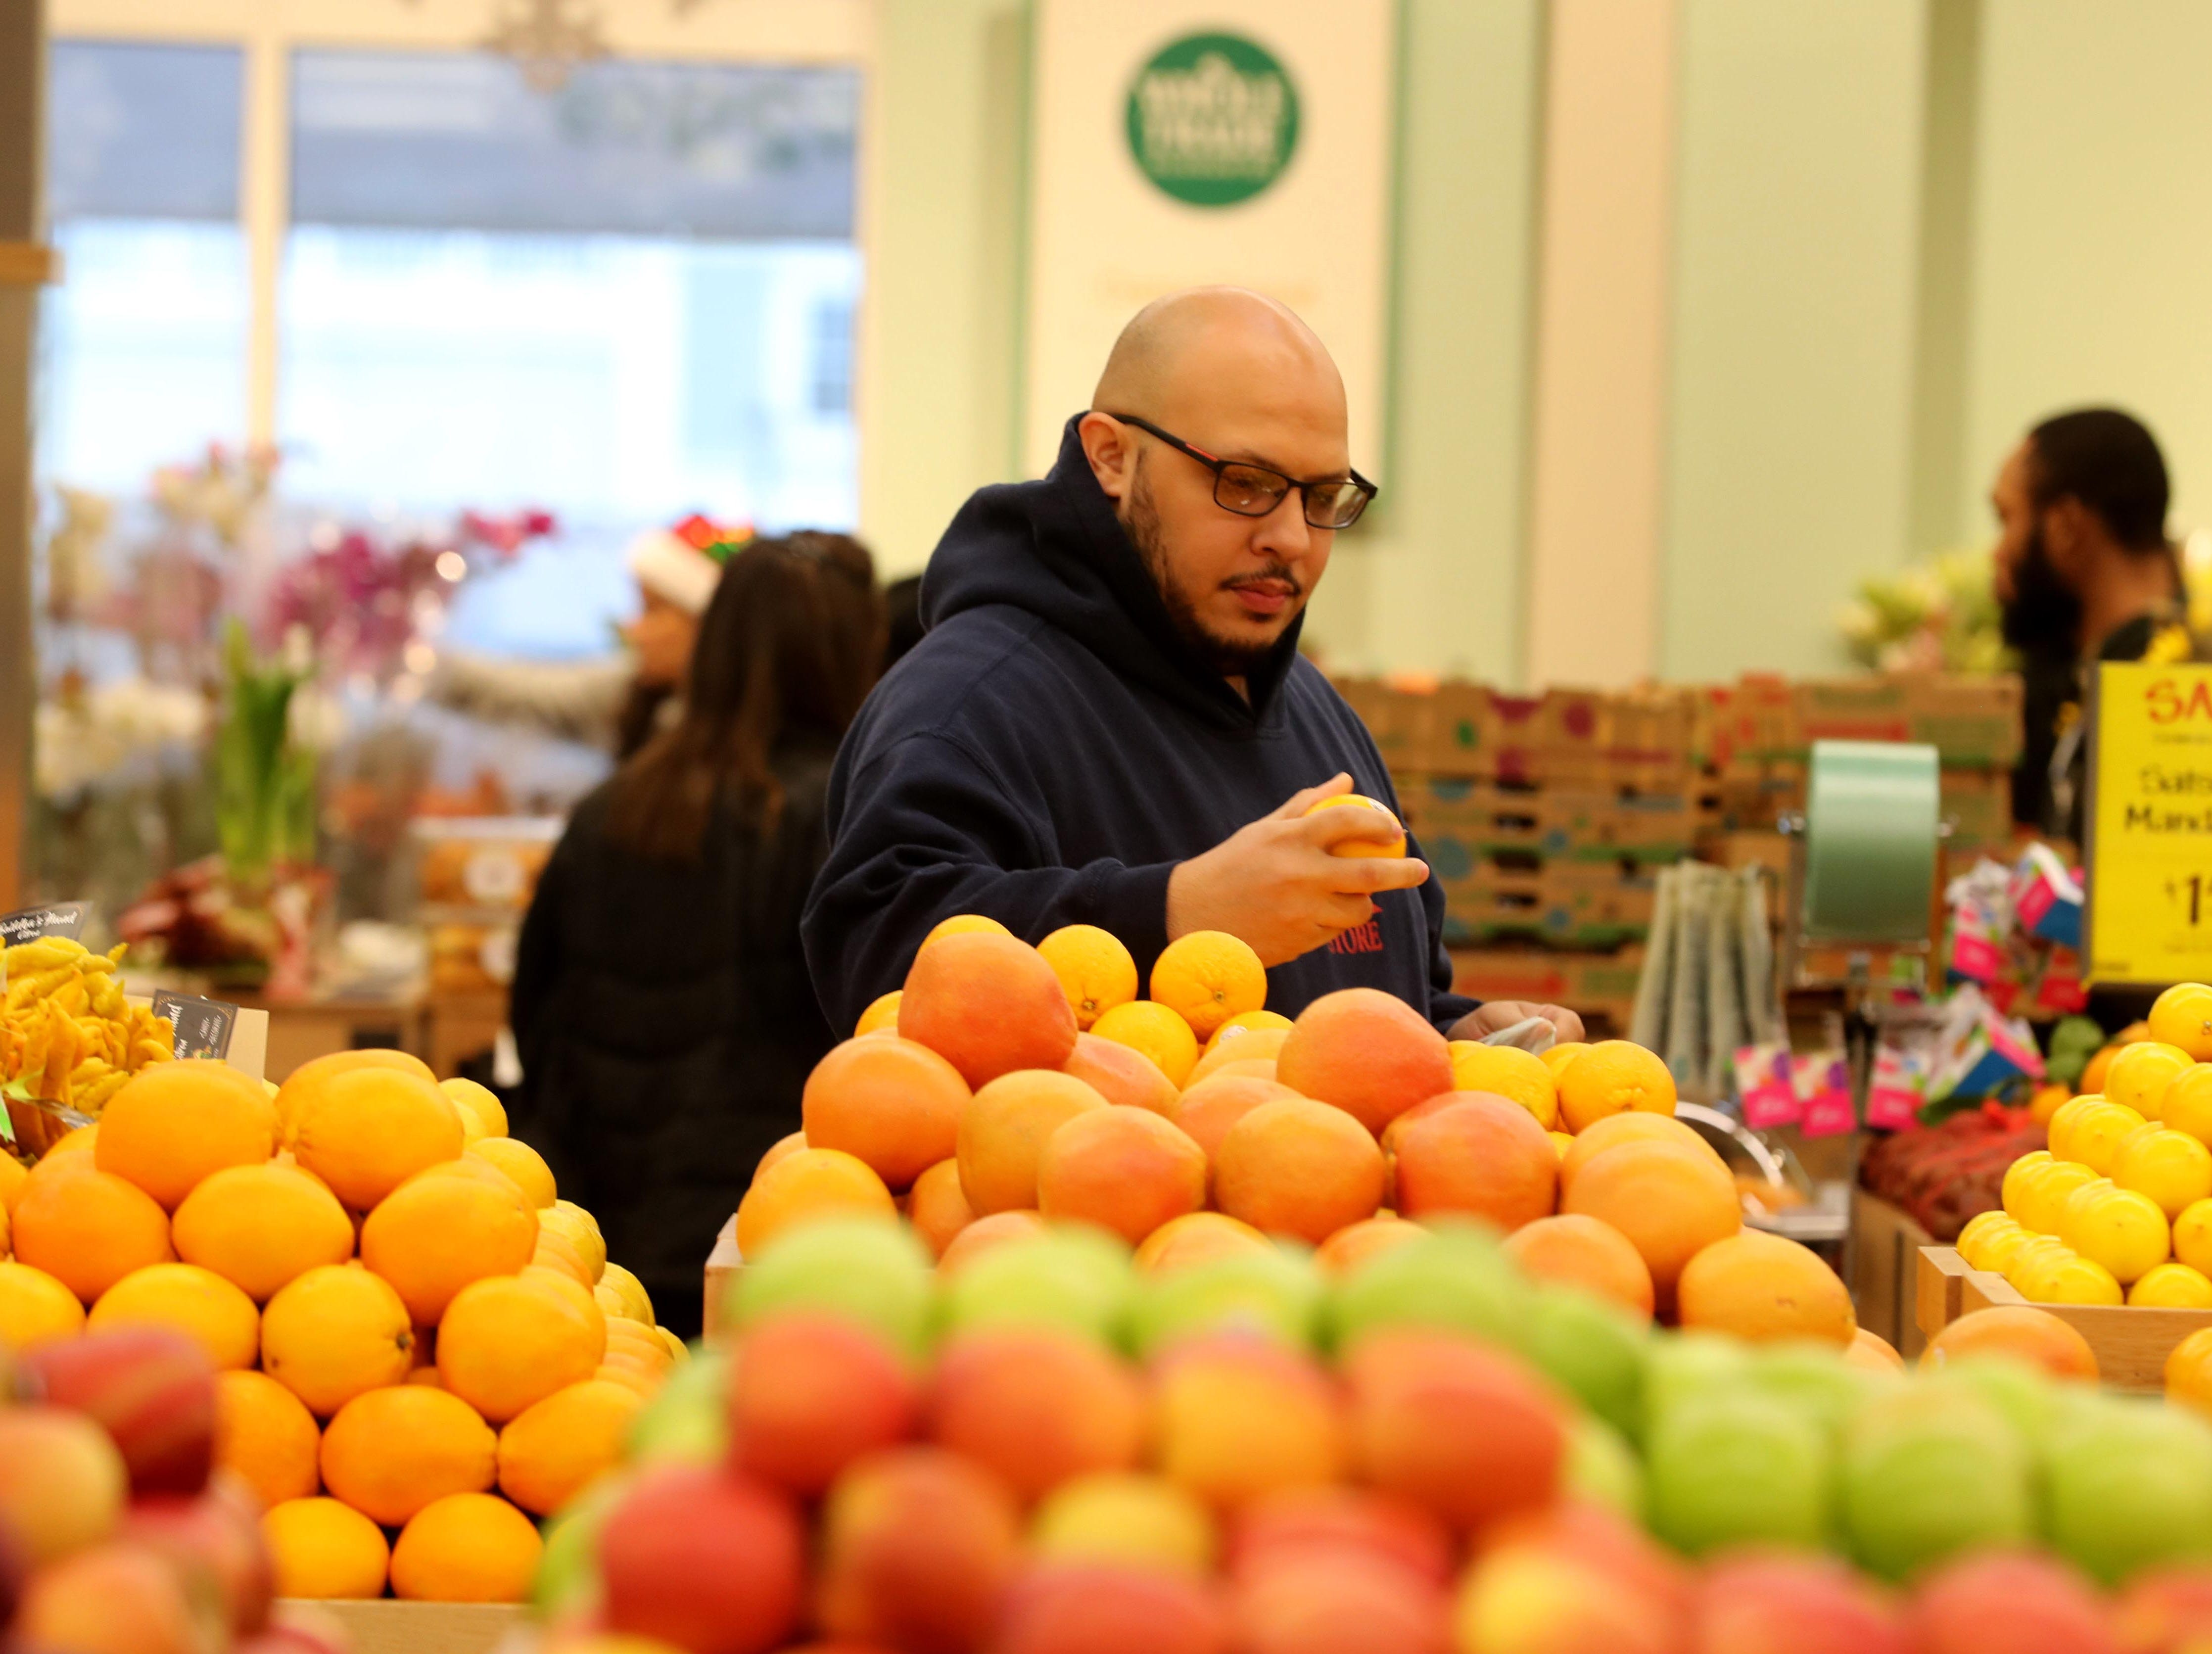 Michael Tapia of Yorktown shops for produce at the new Whole Foods in Chappaqua Dec. 15, 2018. The 40,000 square foot store opened to shoppers on the site of the formers Readers Digest headquarters. The New Castle Town Board and Planning Board approved a temporary traffic plan for the Route 117-Roaring Brook Road intersection that allowed the store to open.